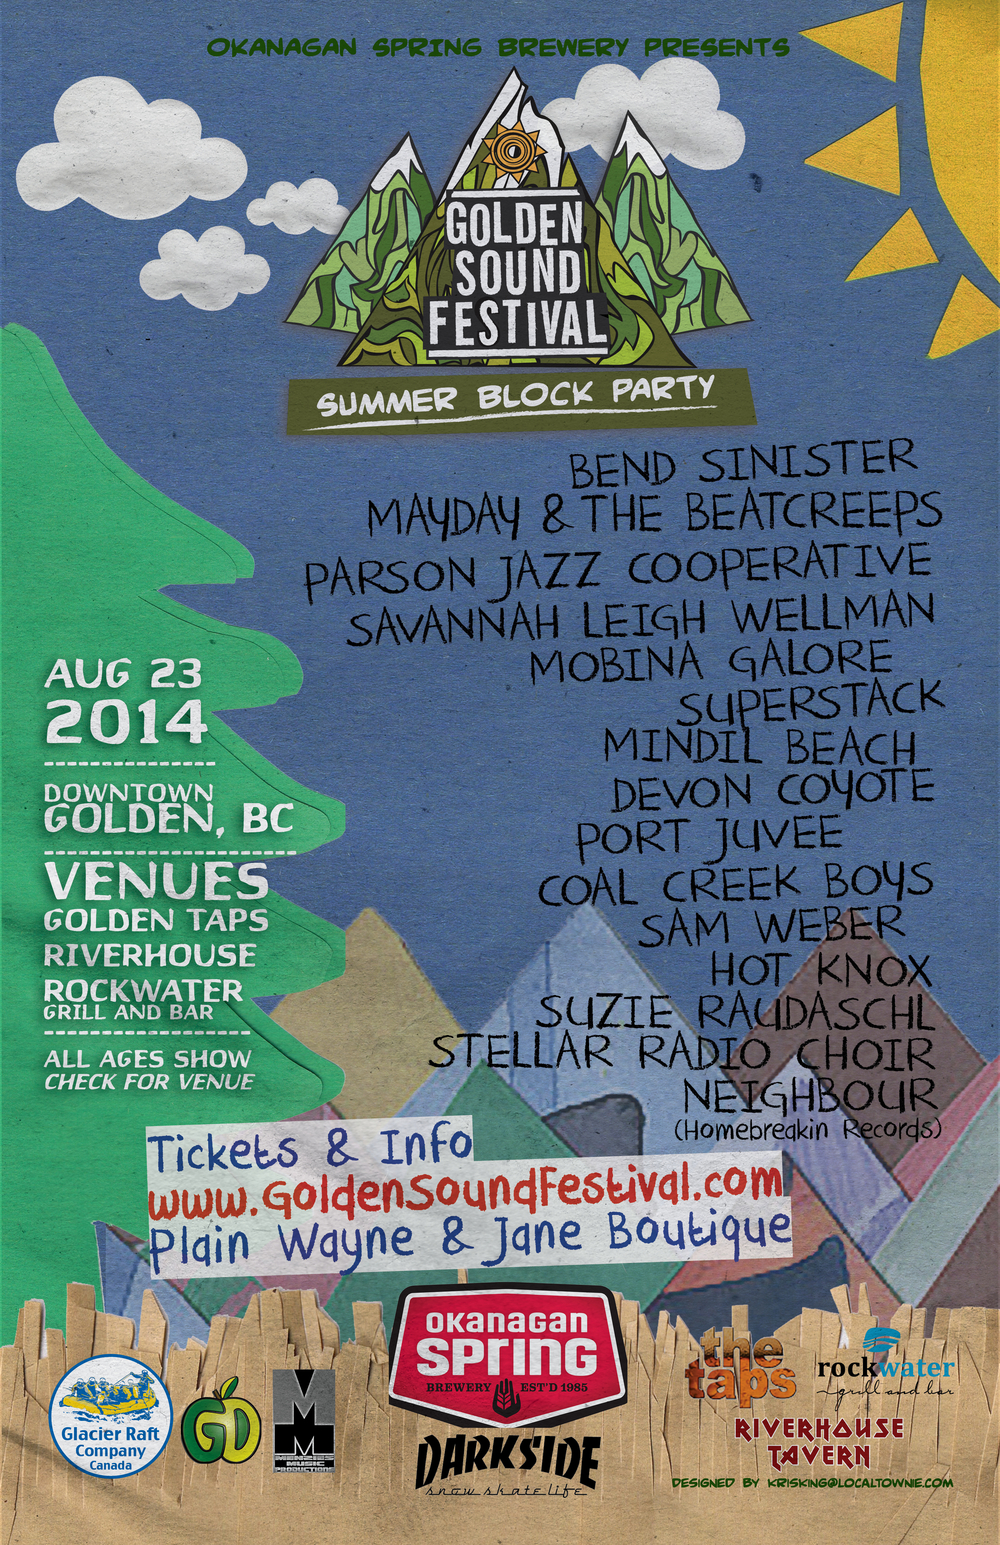 Golden Sound Festival SBP July 21 2014 POSTER FINAL.jpg